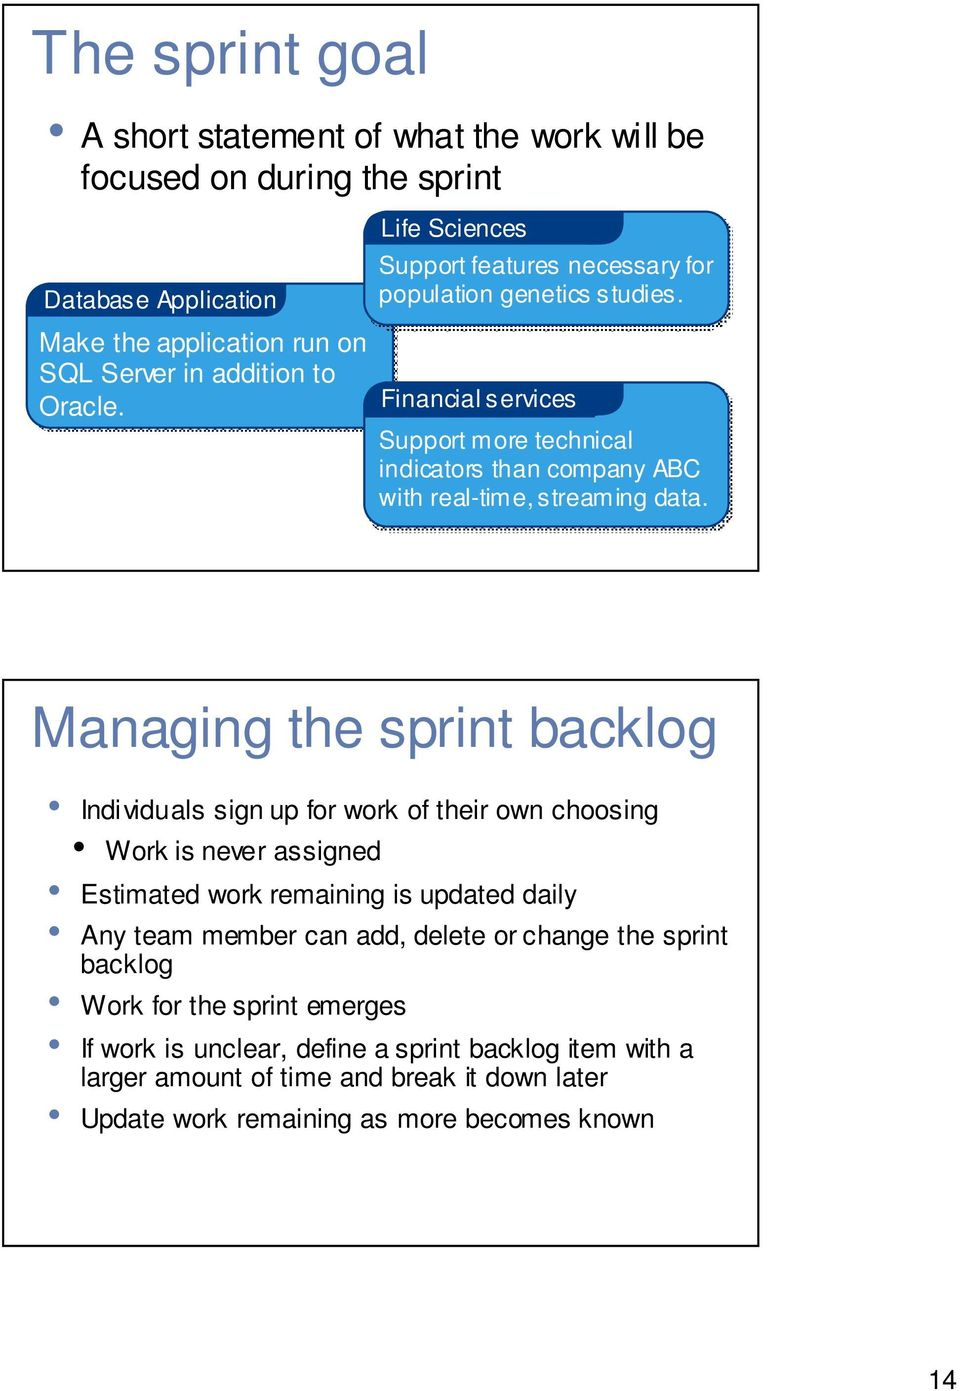 Managing the sprint backlog Individuals sign up for work of their own choosing Work is never assigned Estimated work remaining is updated daily Any team member can add, delete or